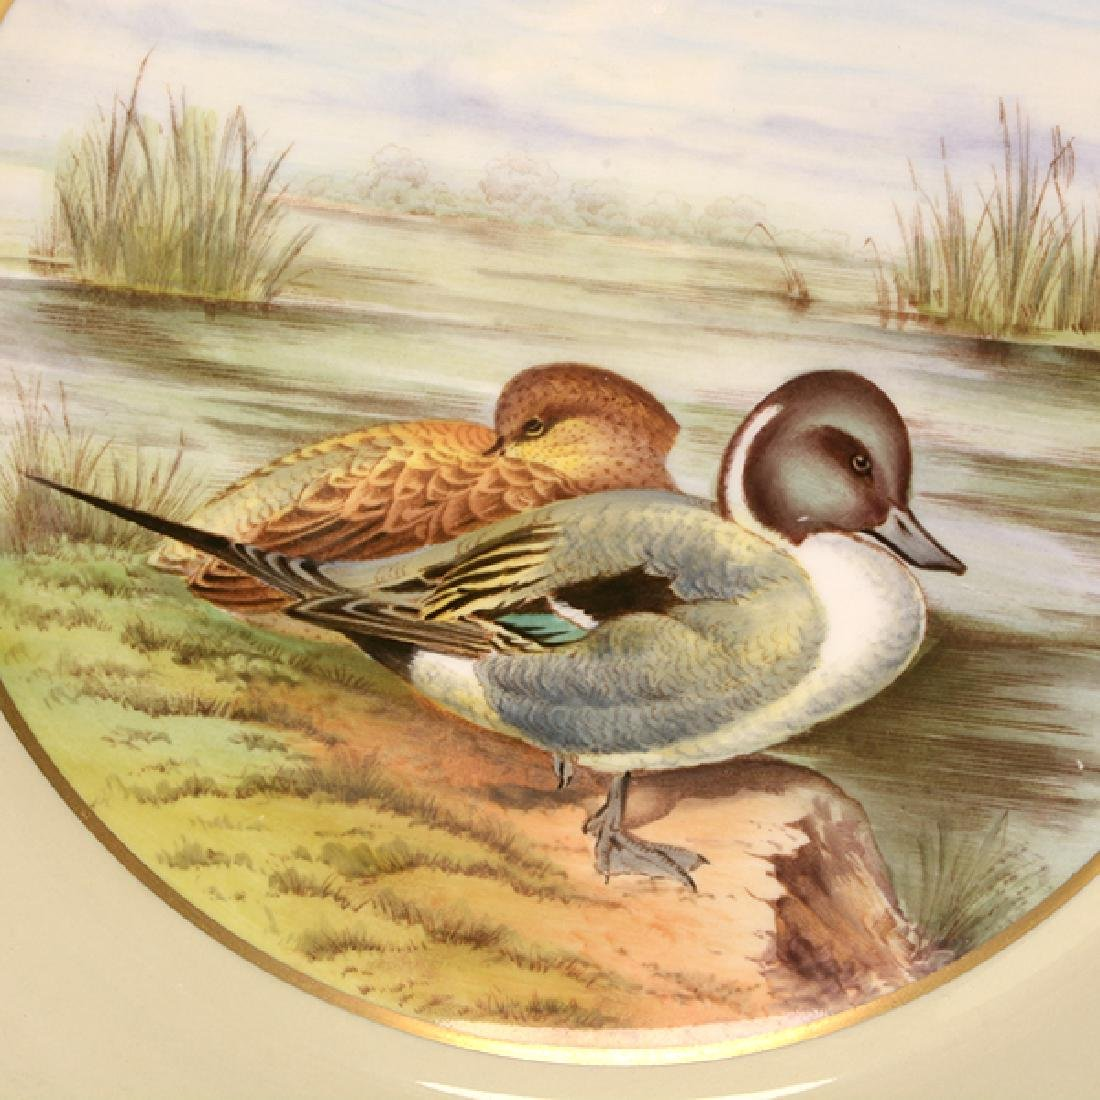 Twelve Spode Plates of Ducks, Fish, and Wildflowers - 7